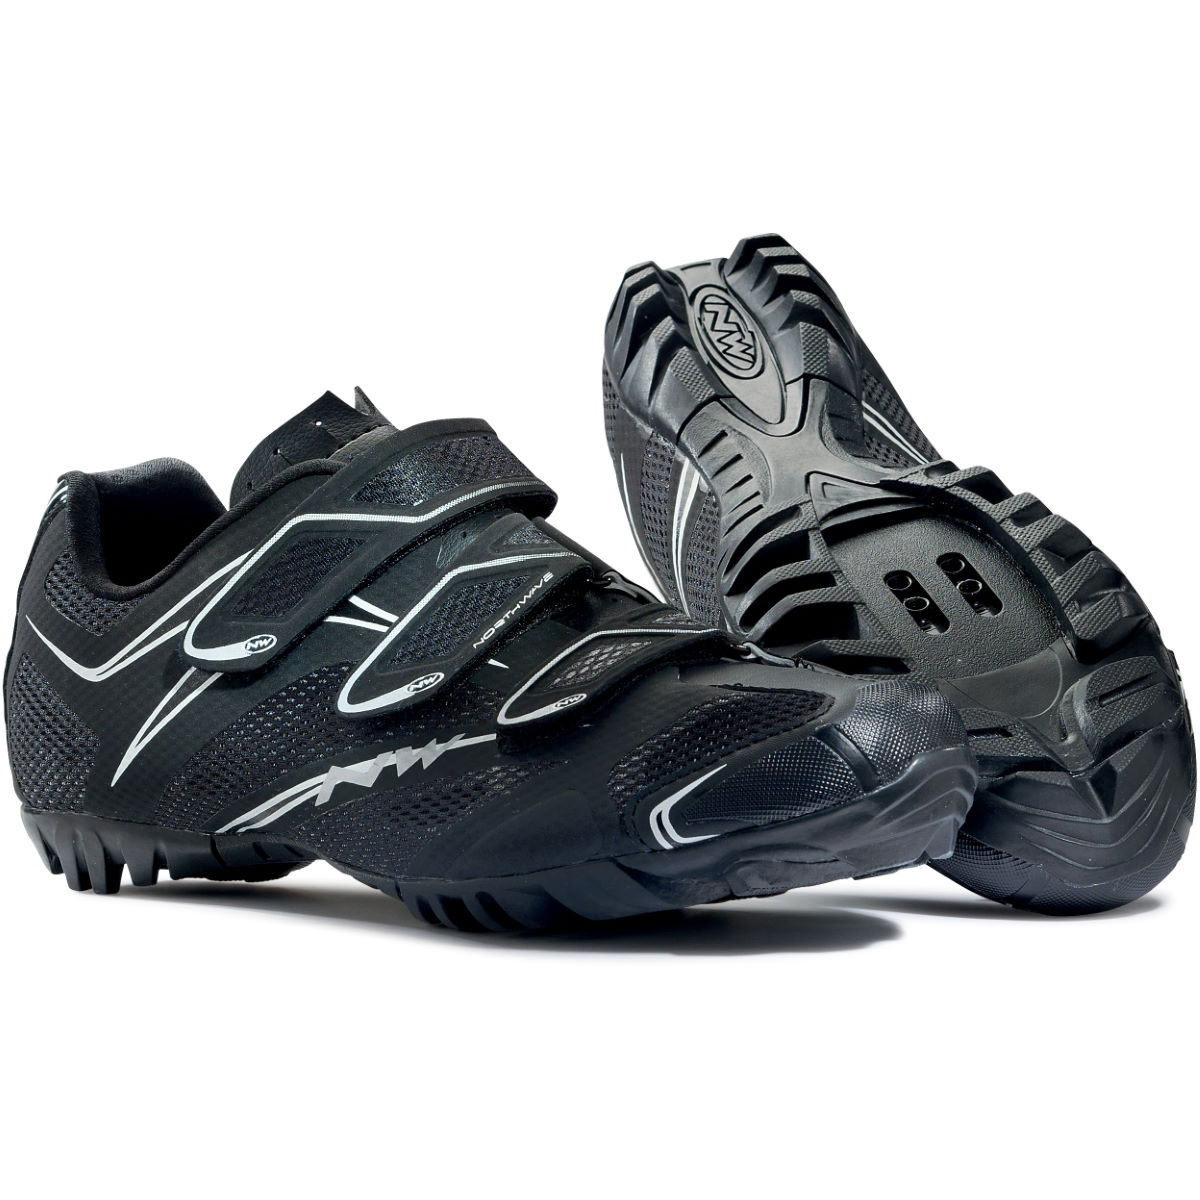 Northwave Touring 3S MTB SPD Shoes - Zapatillas MTB